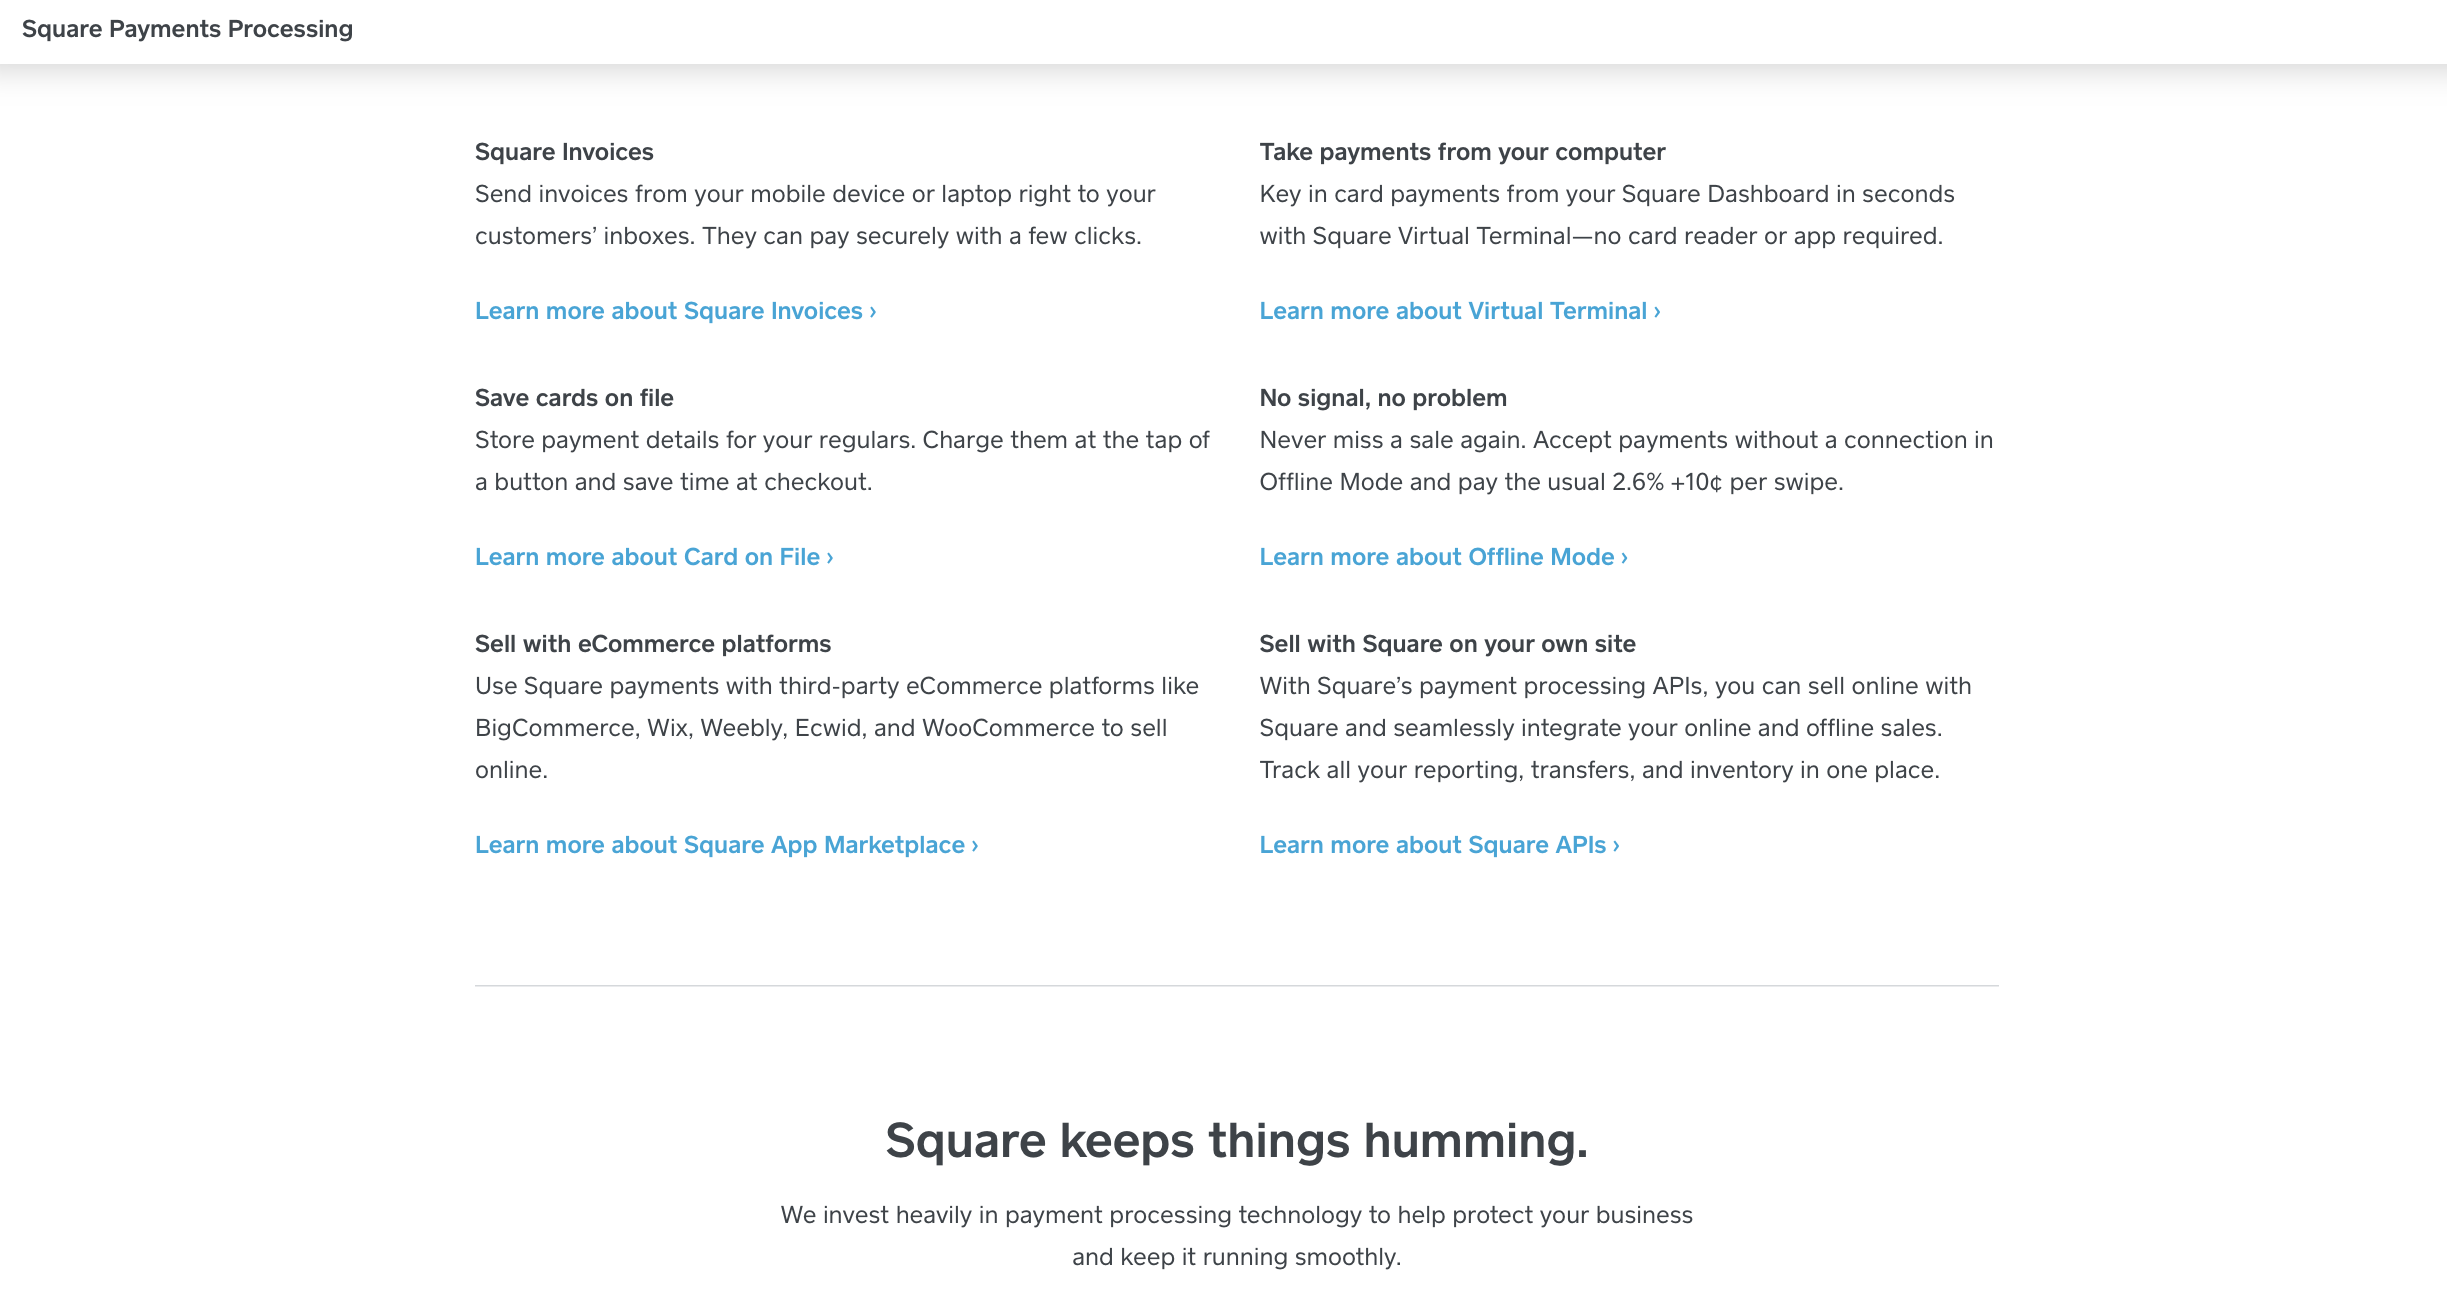 square's features